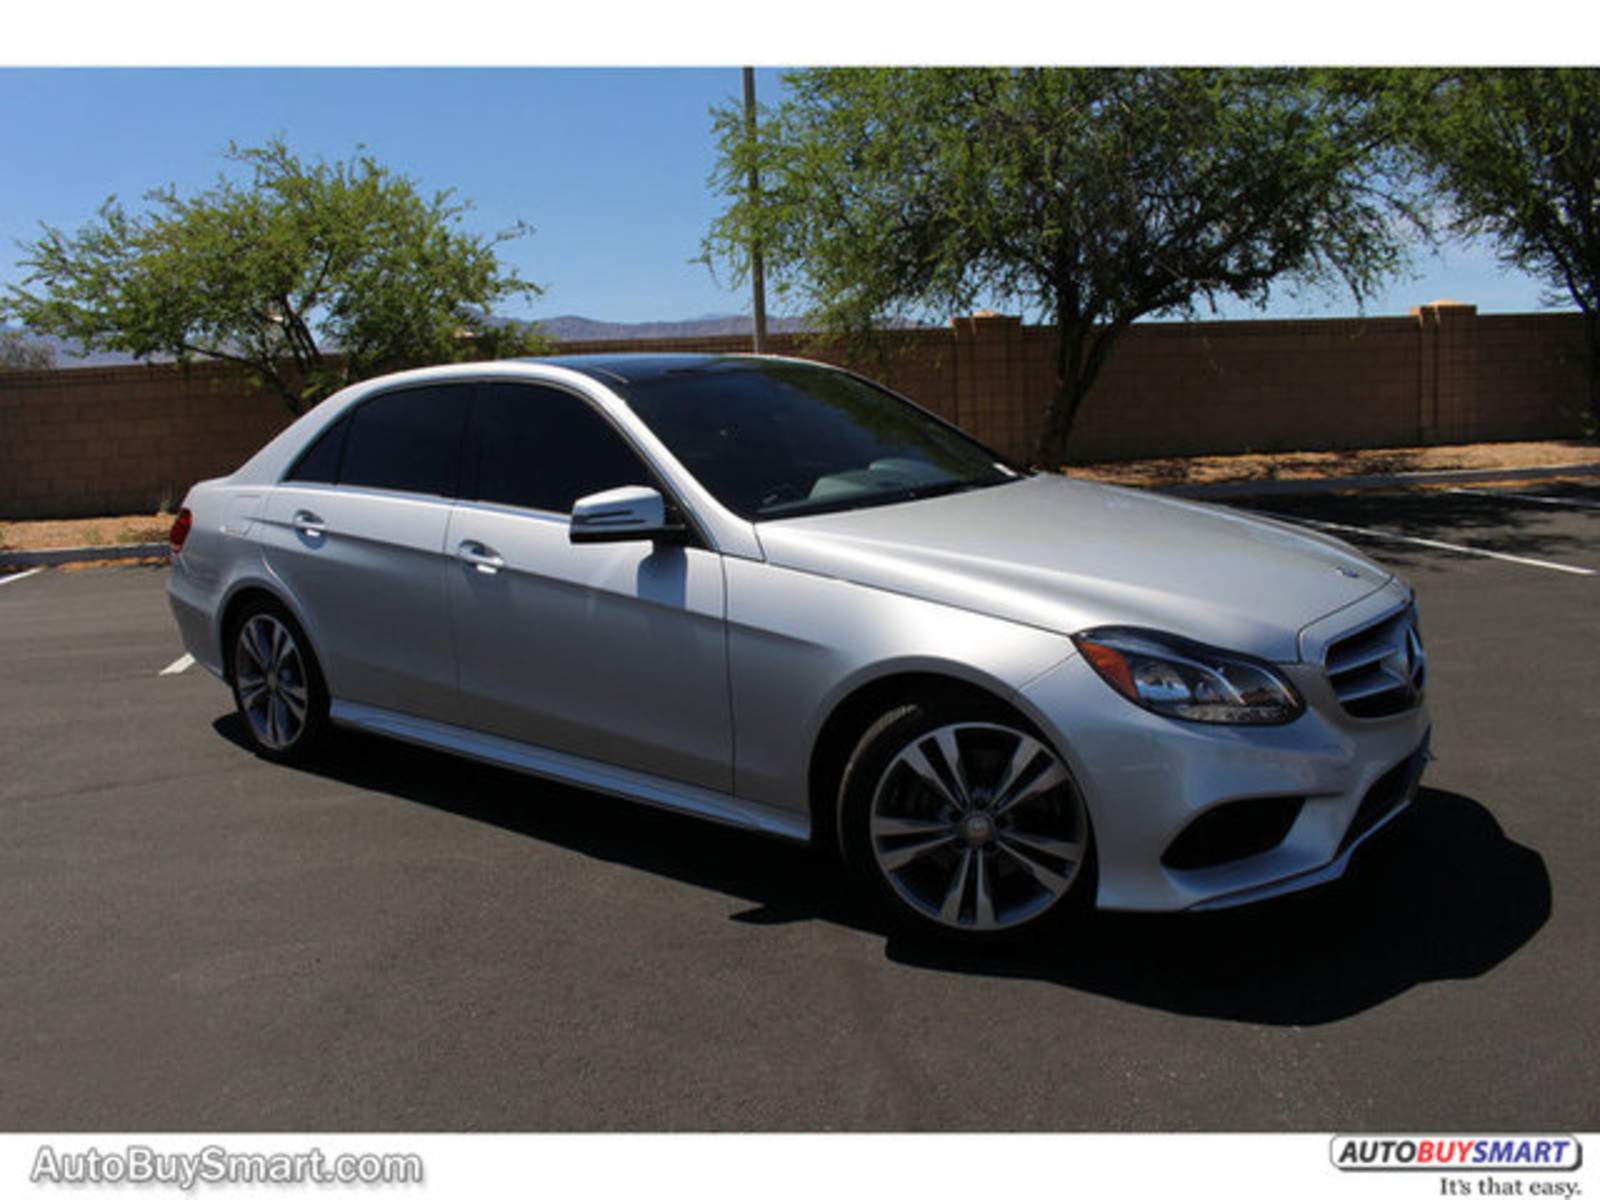 2016 mercedes benz e class used for sale in las vegas for Mercedes benz e class 2016 for sale